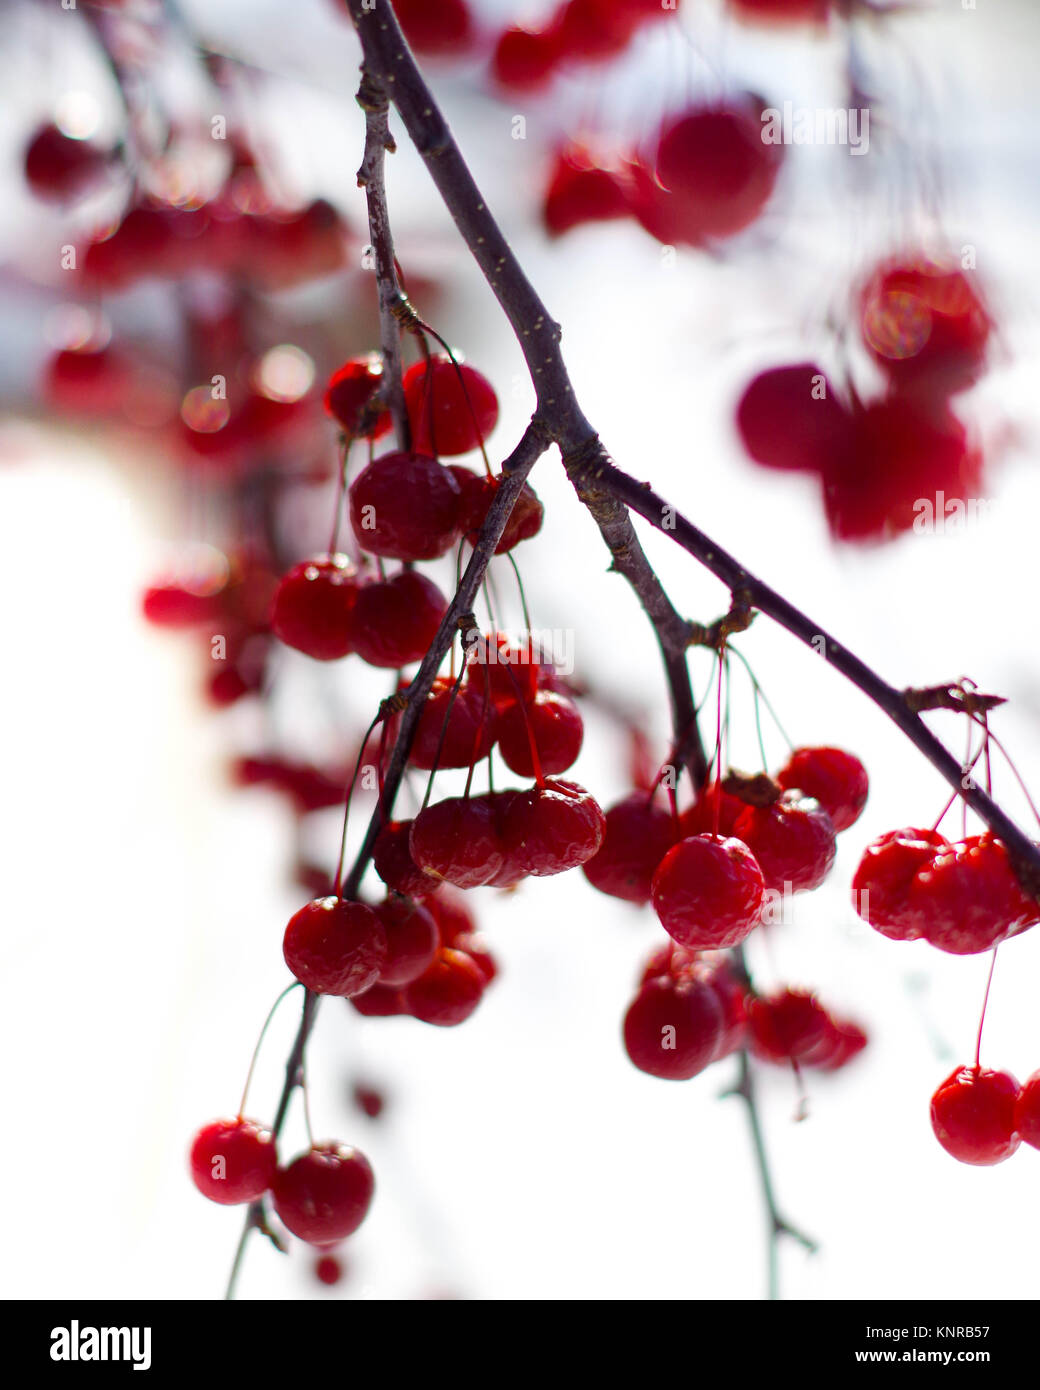 winter berries winterberry plant stockfotos winter berries winterberry plant bilder alamy. Black Bedroom Furniture Sets. Home Design Ideas